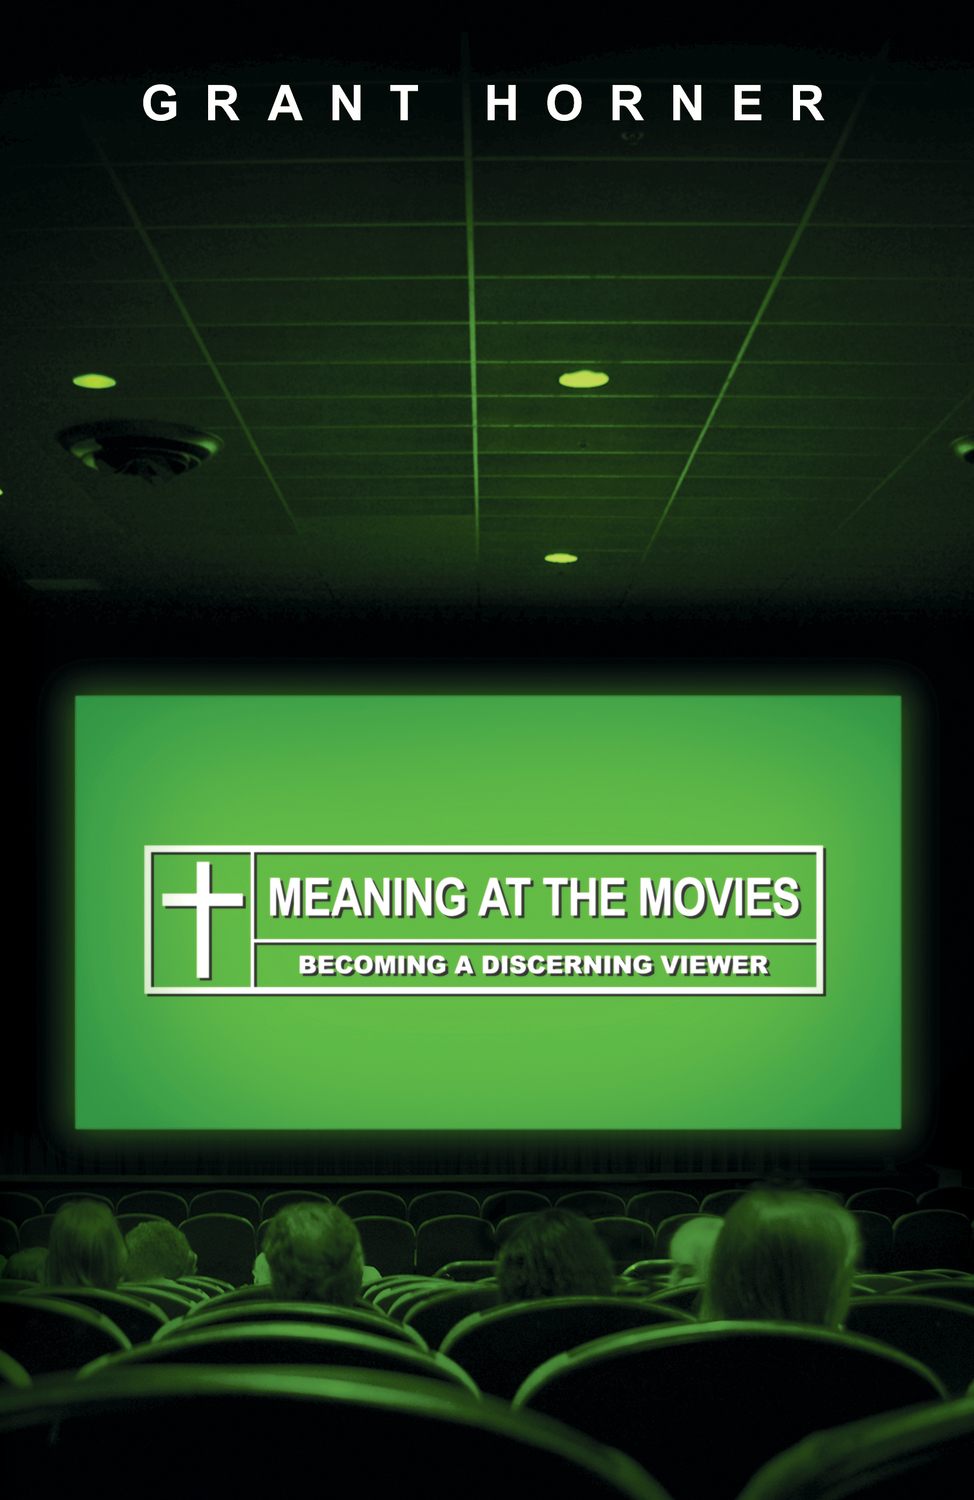 Meaning at the Movies